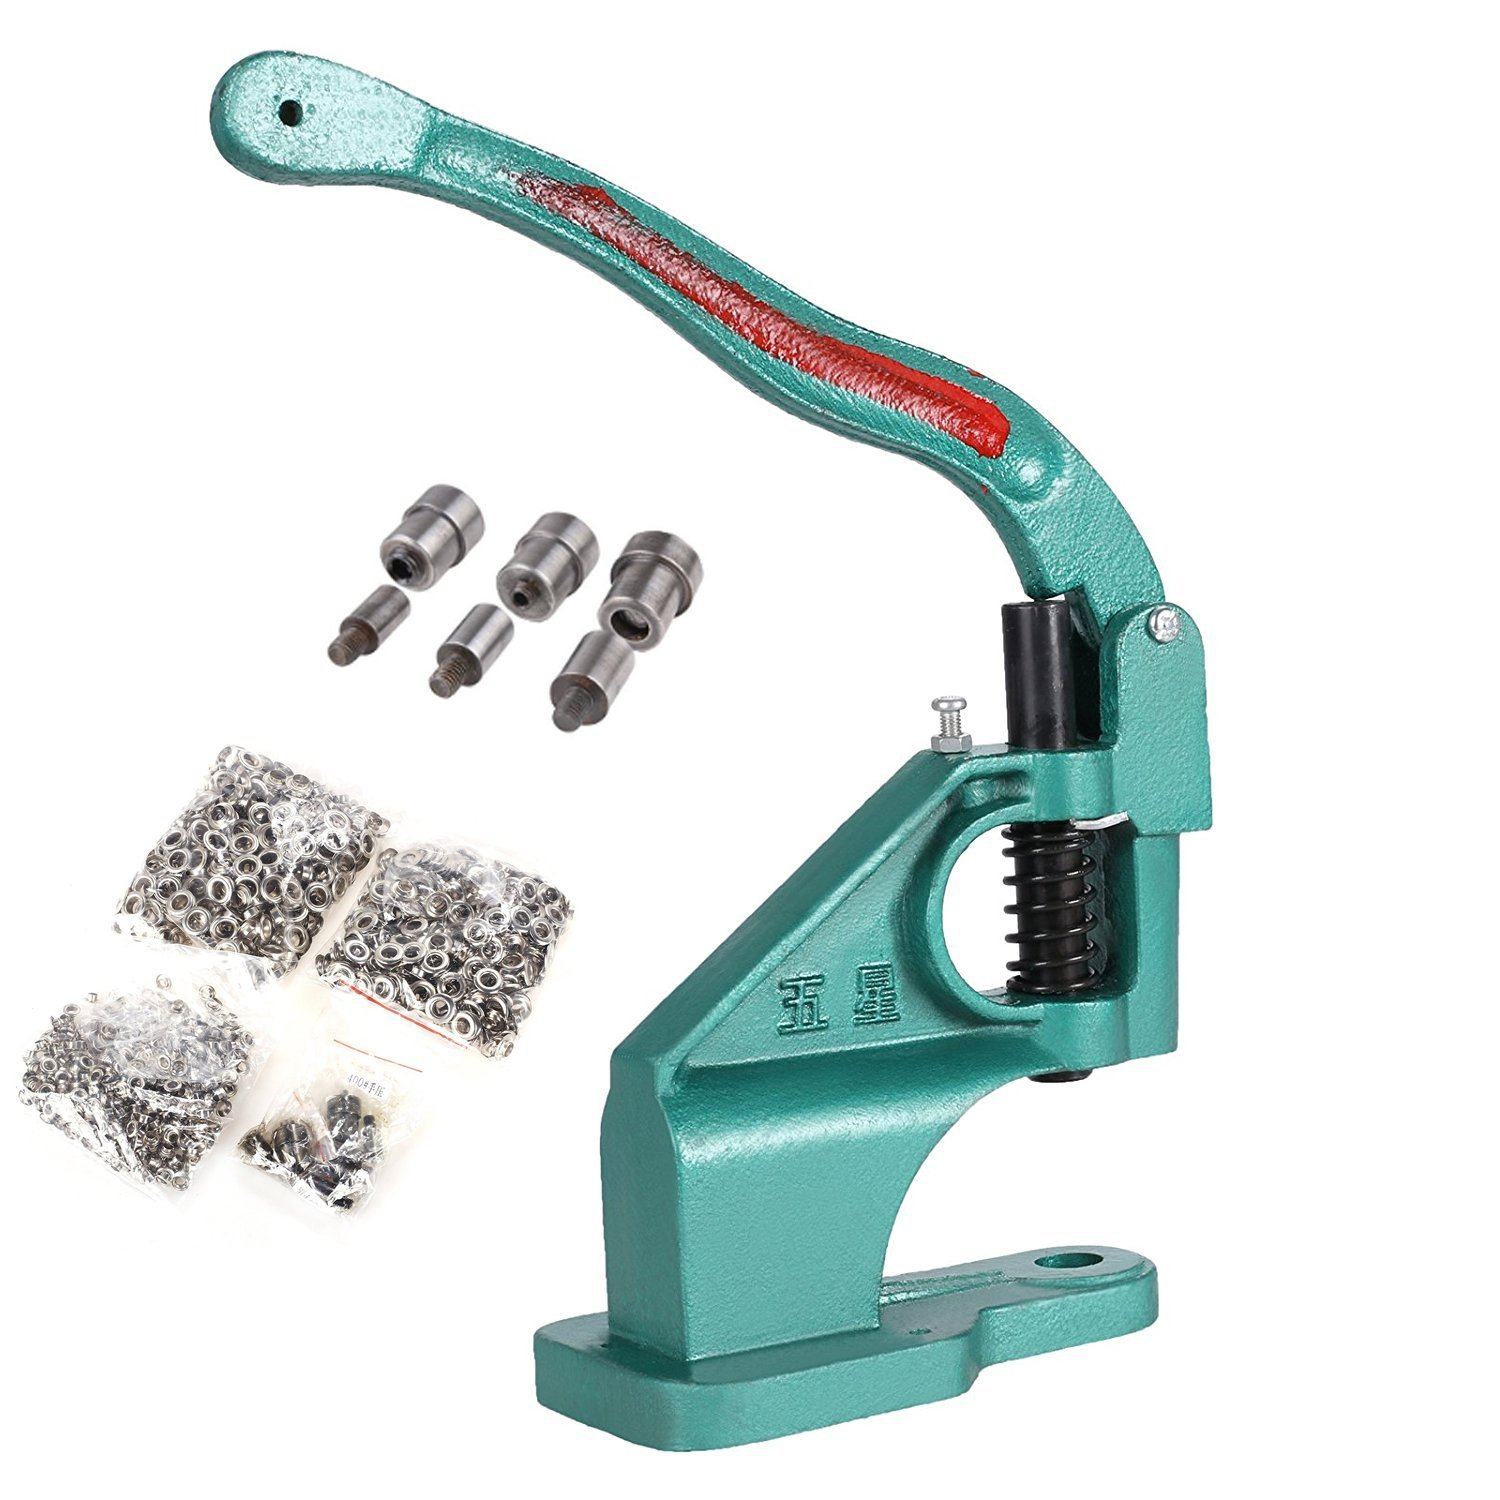 Cheesea Craft/Industrial Use Manual Press Grommet Machine Heavy Duty with 900 Grommets Eyelet with 3 Dies GrommetToolNoHandlecover3